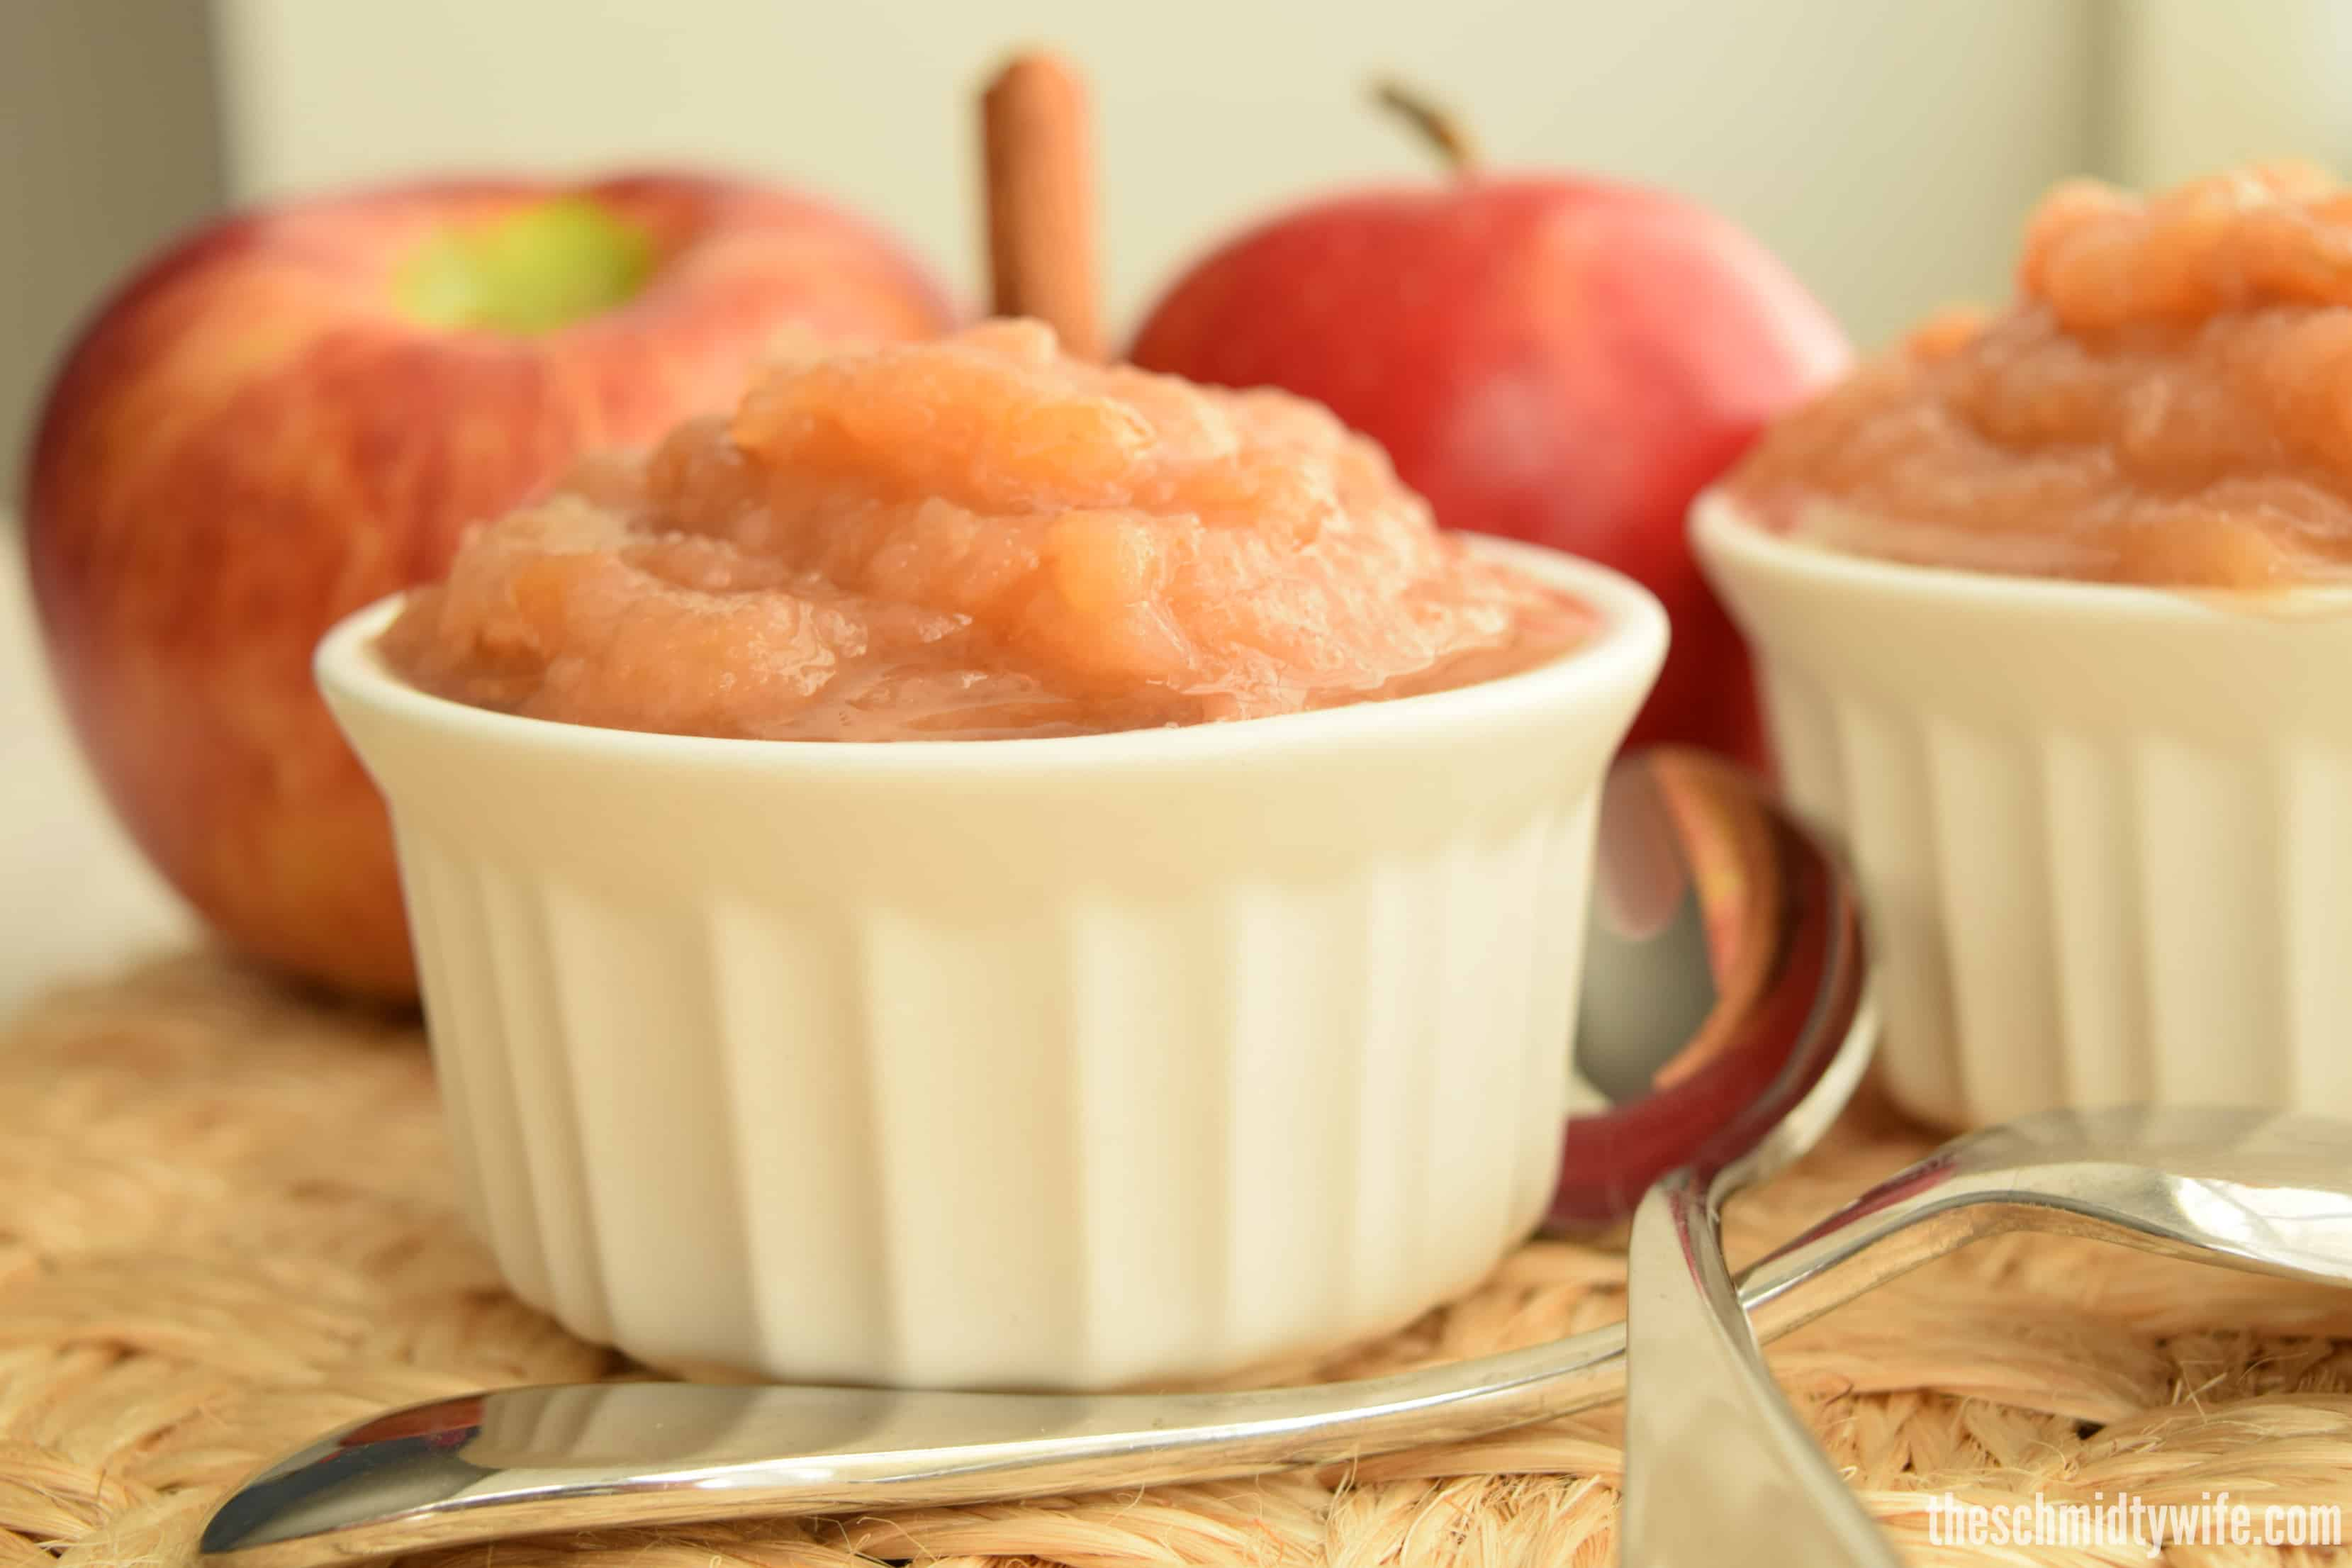 dish full of fresh made applesauce